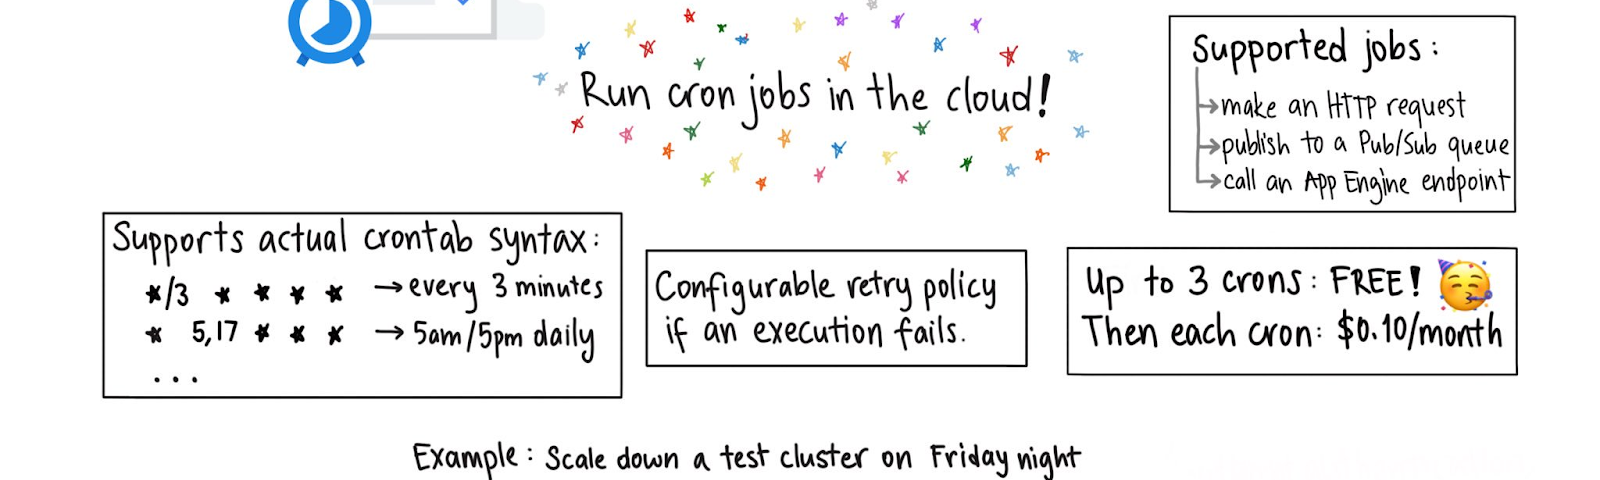 All stories published by Google Cloud Platform - Community on